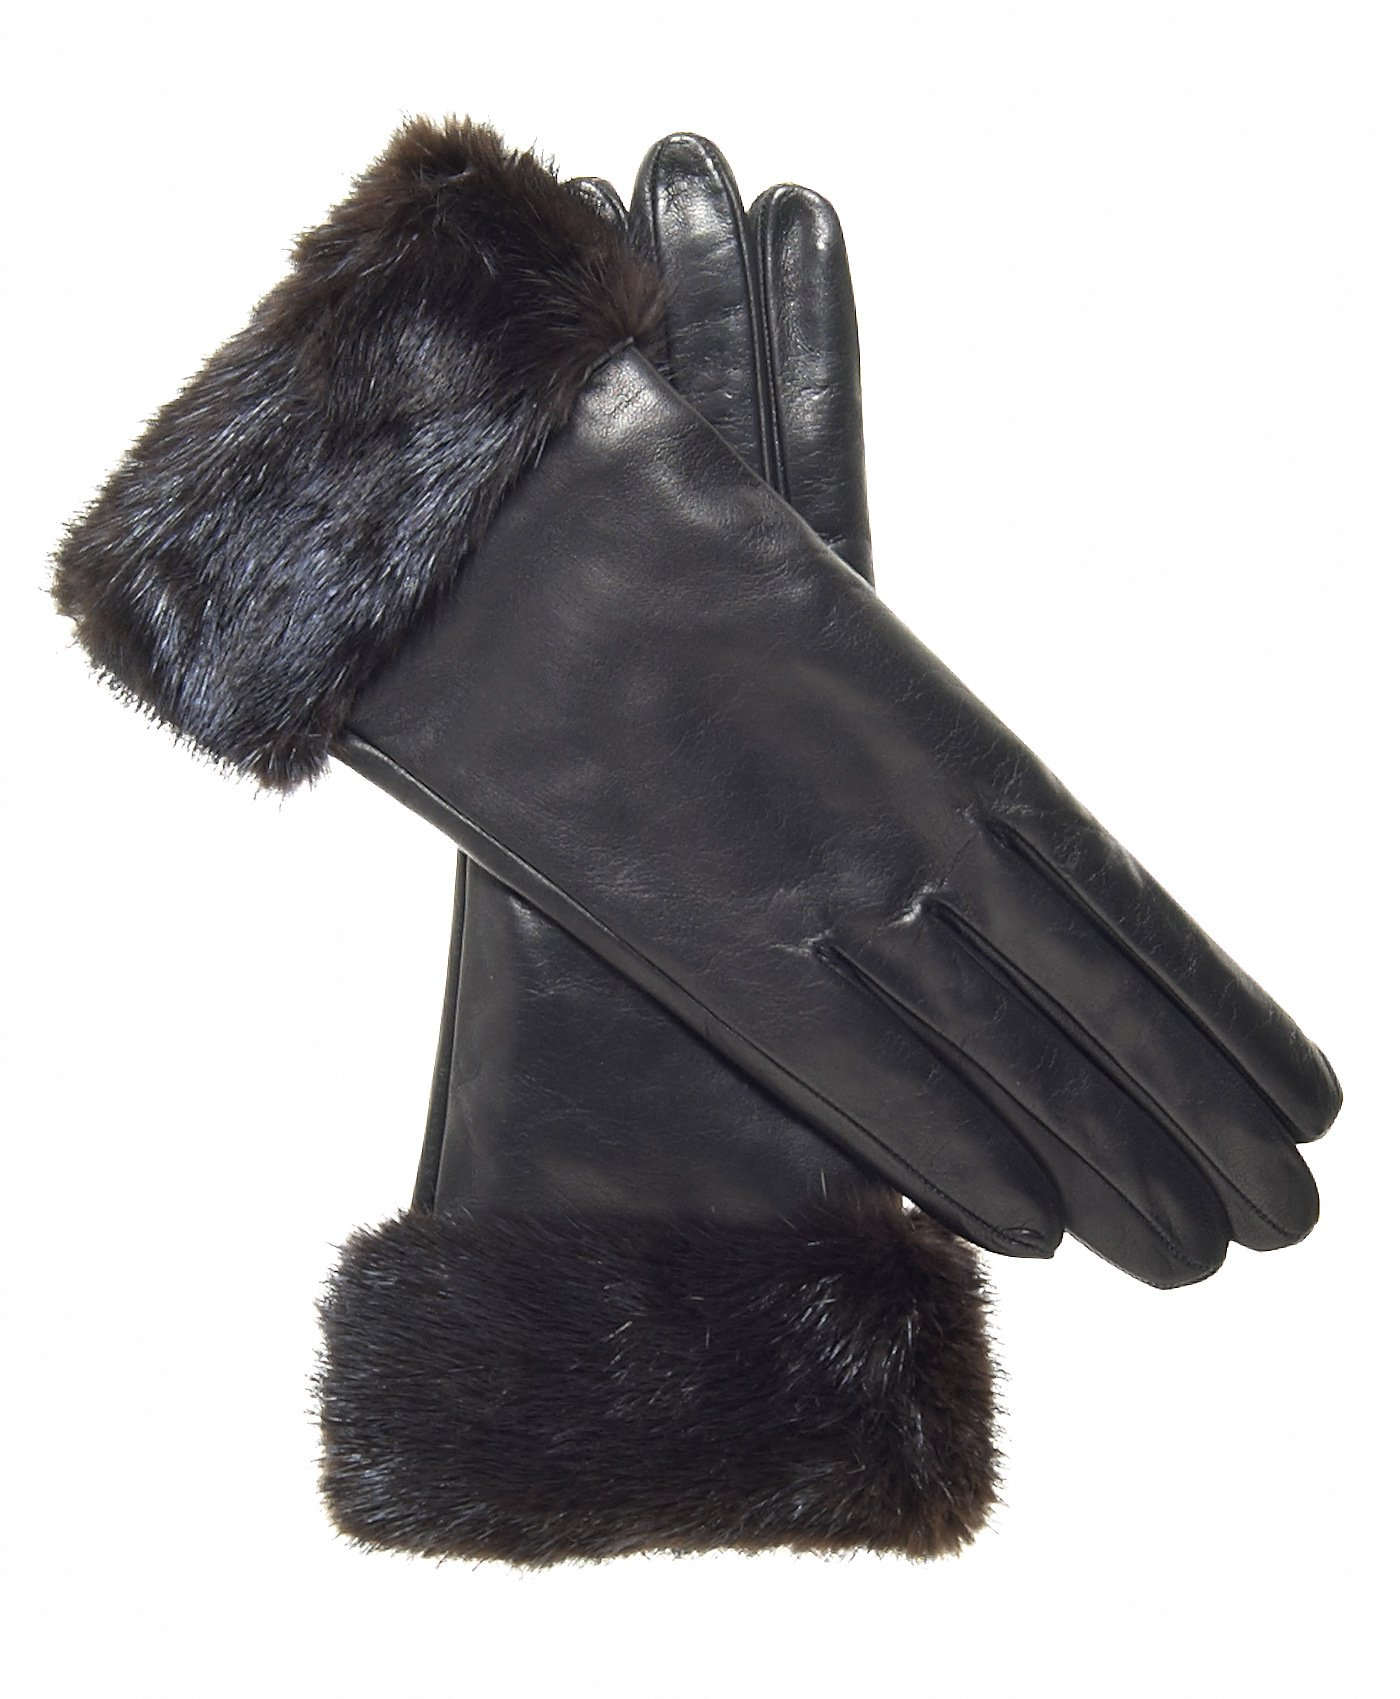 Fratelli Orsini Women's Italian Cashmere Lined Leather Gloves with Mink Cuff Size 6 1/2 Color Black